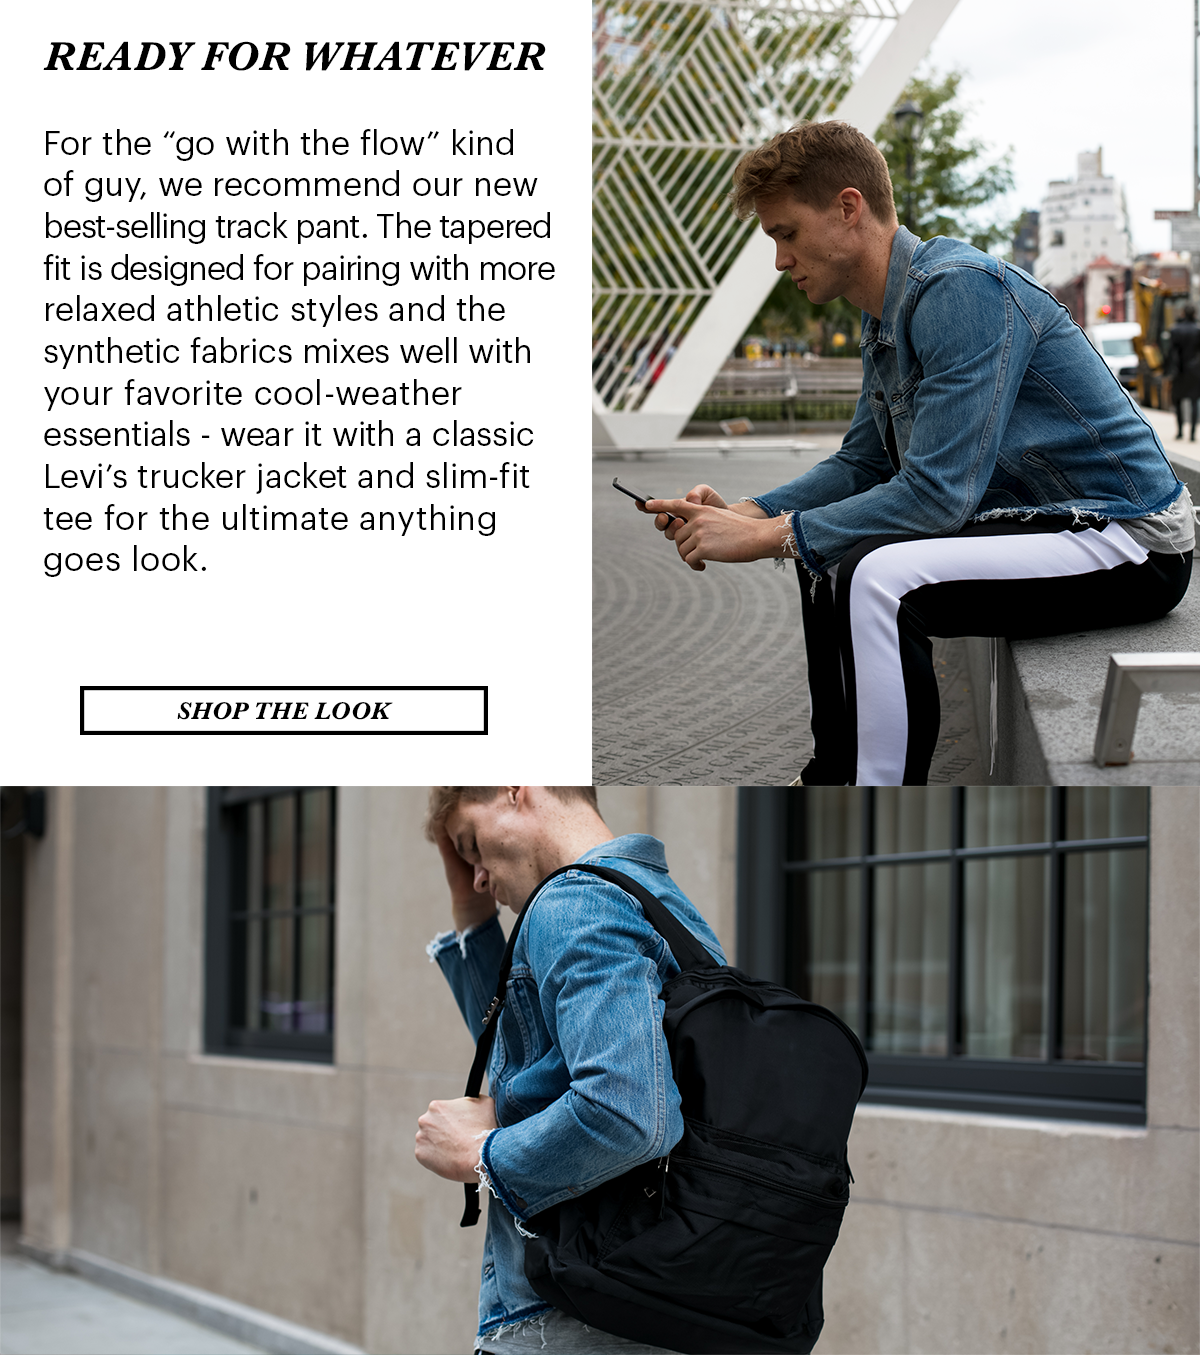 "Ready for Whatever. For the ""go with the flow"" kind of guy, we recommend our new best-selling track pant. The tapered fit is designed for pairing with more relaxed athletic styles and the synthetic fabrics mix well with your favorite cool-weather essentials - wear it with a classic Levi&squot;s trucker jacket and slim-fit tee for the ultimate anything goes look. 